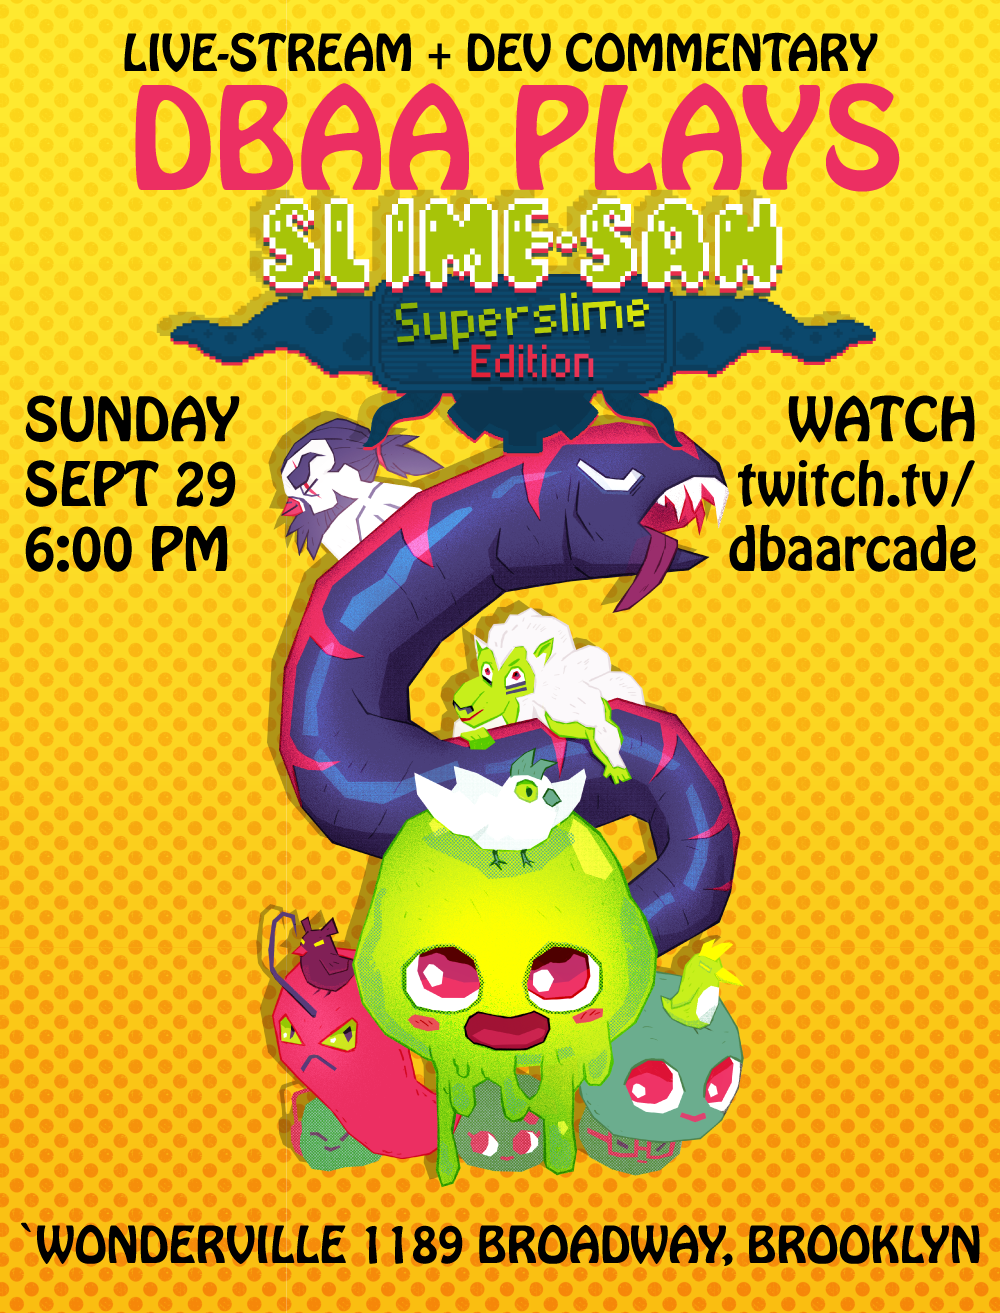 Tickets: https://withfriends.co/event/2641214/dbaa_plays_slime_san